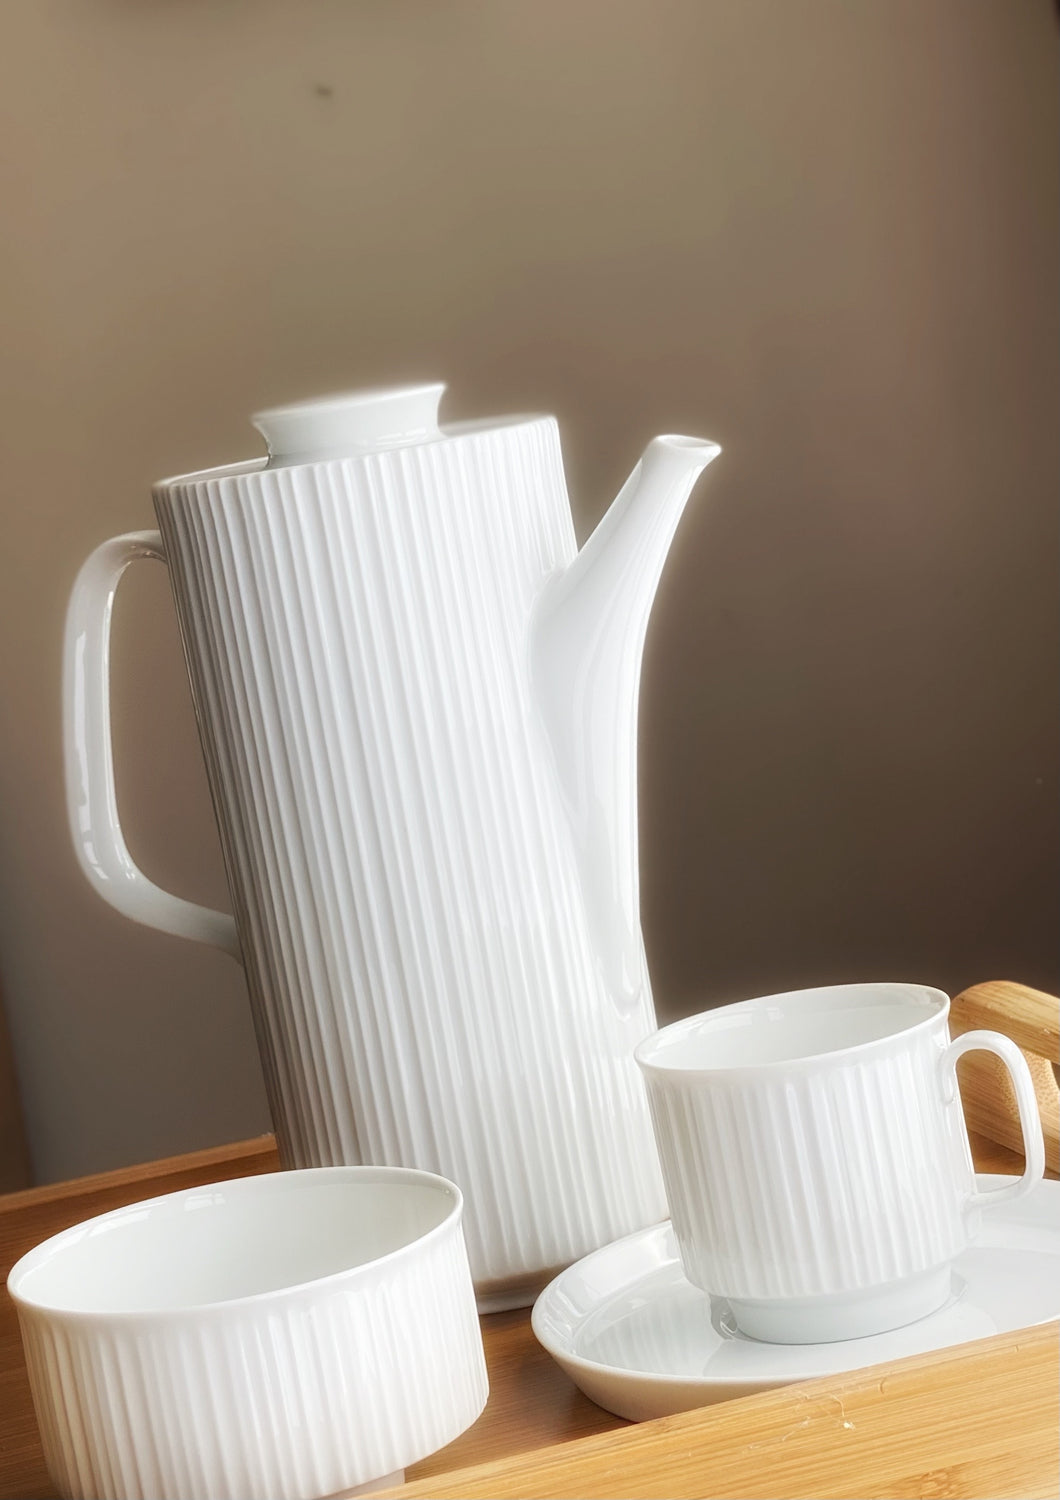 Tapio Wirkkala Coffee Service for Rosenthal 'Variation' 1970s